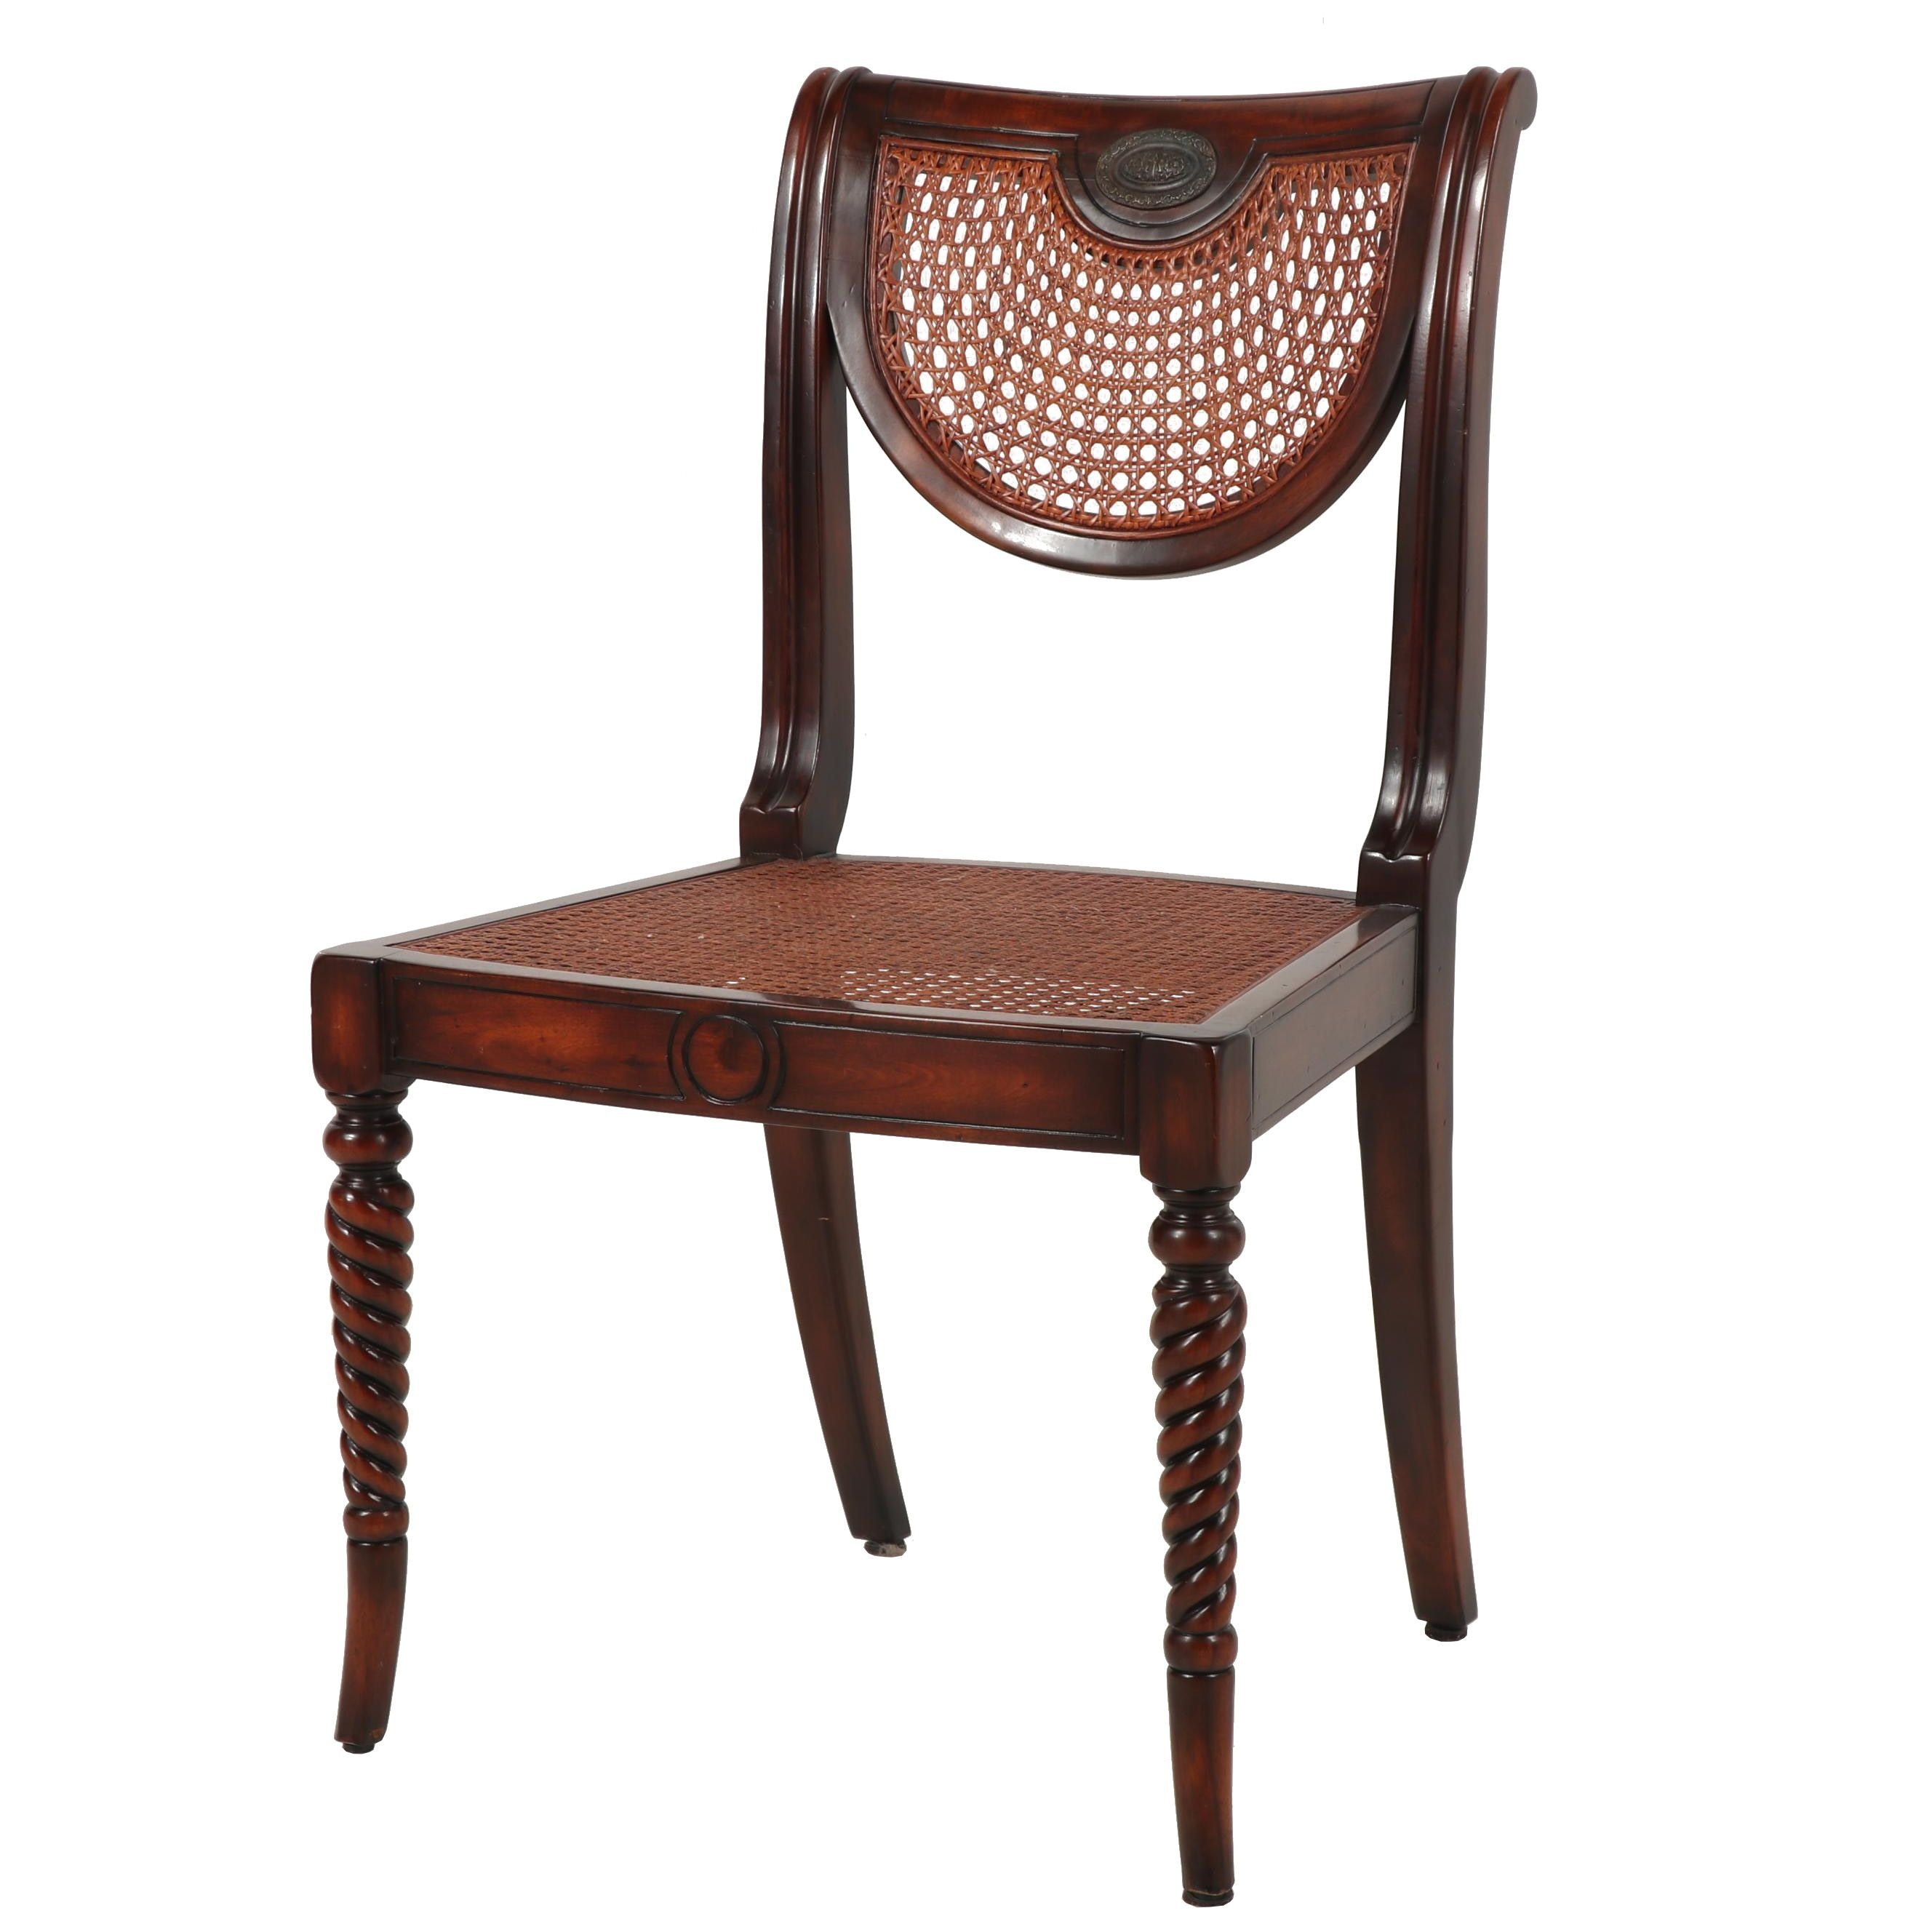 Contemporary Mahogany Caned Side Chair with Heraldry Decoration